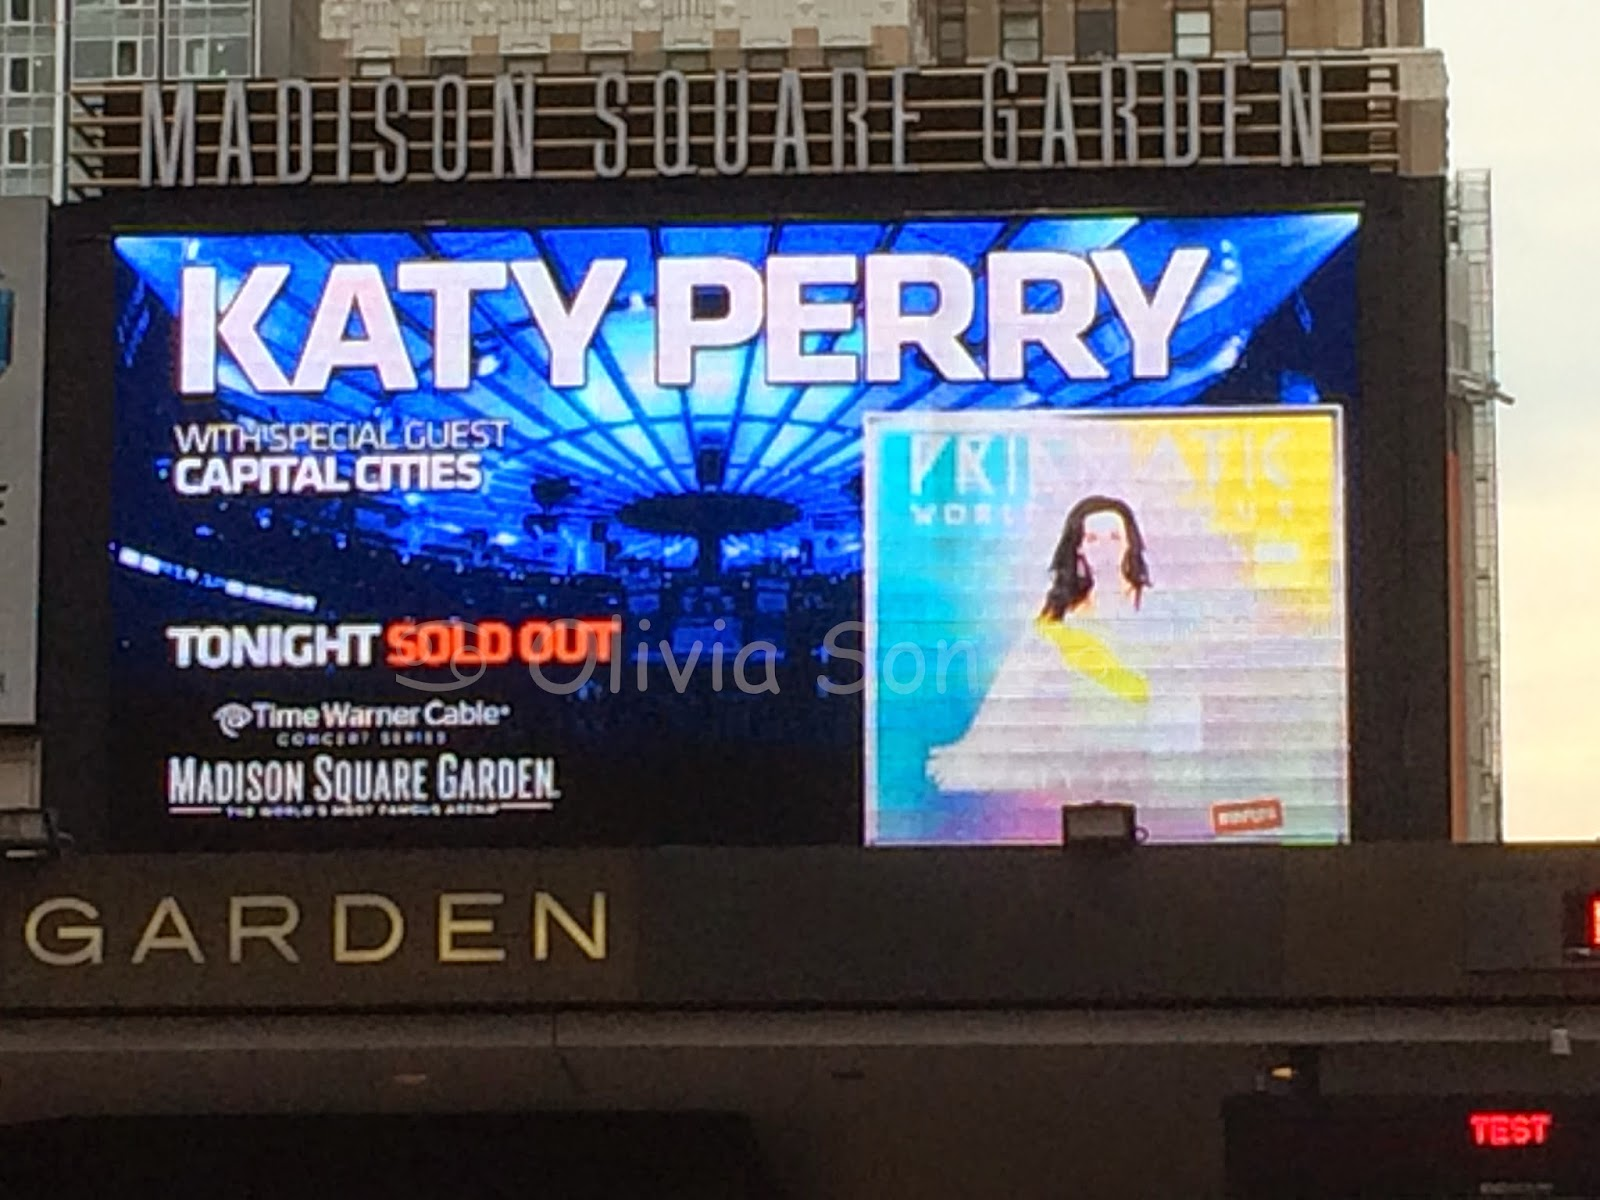 katy perry prismatic world tour madison square garden, new york city, usa